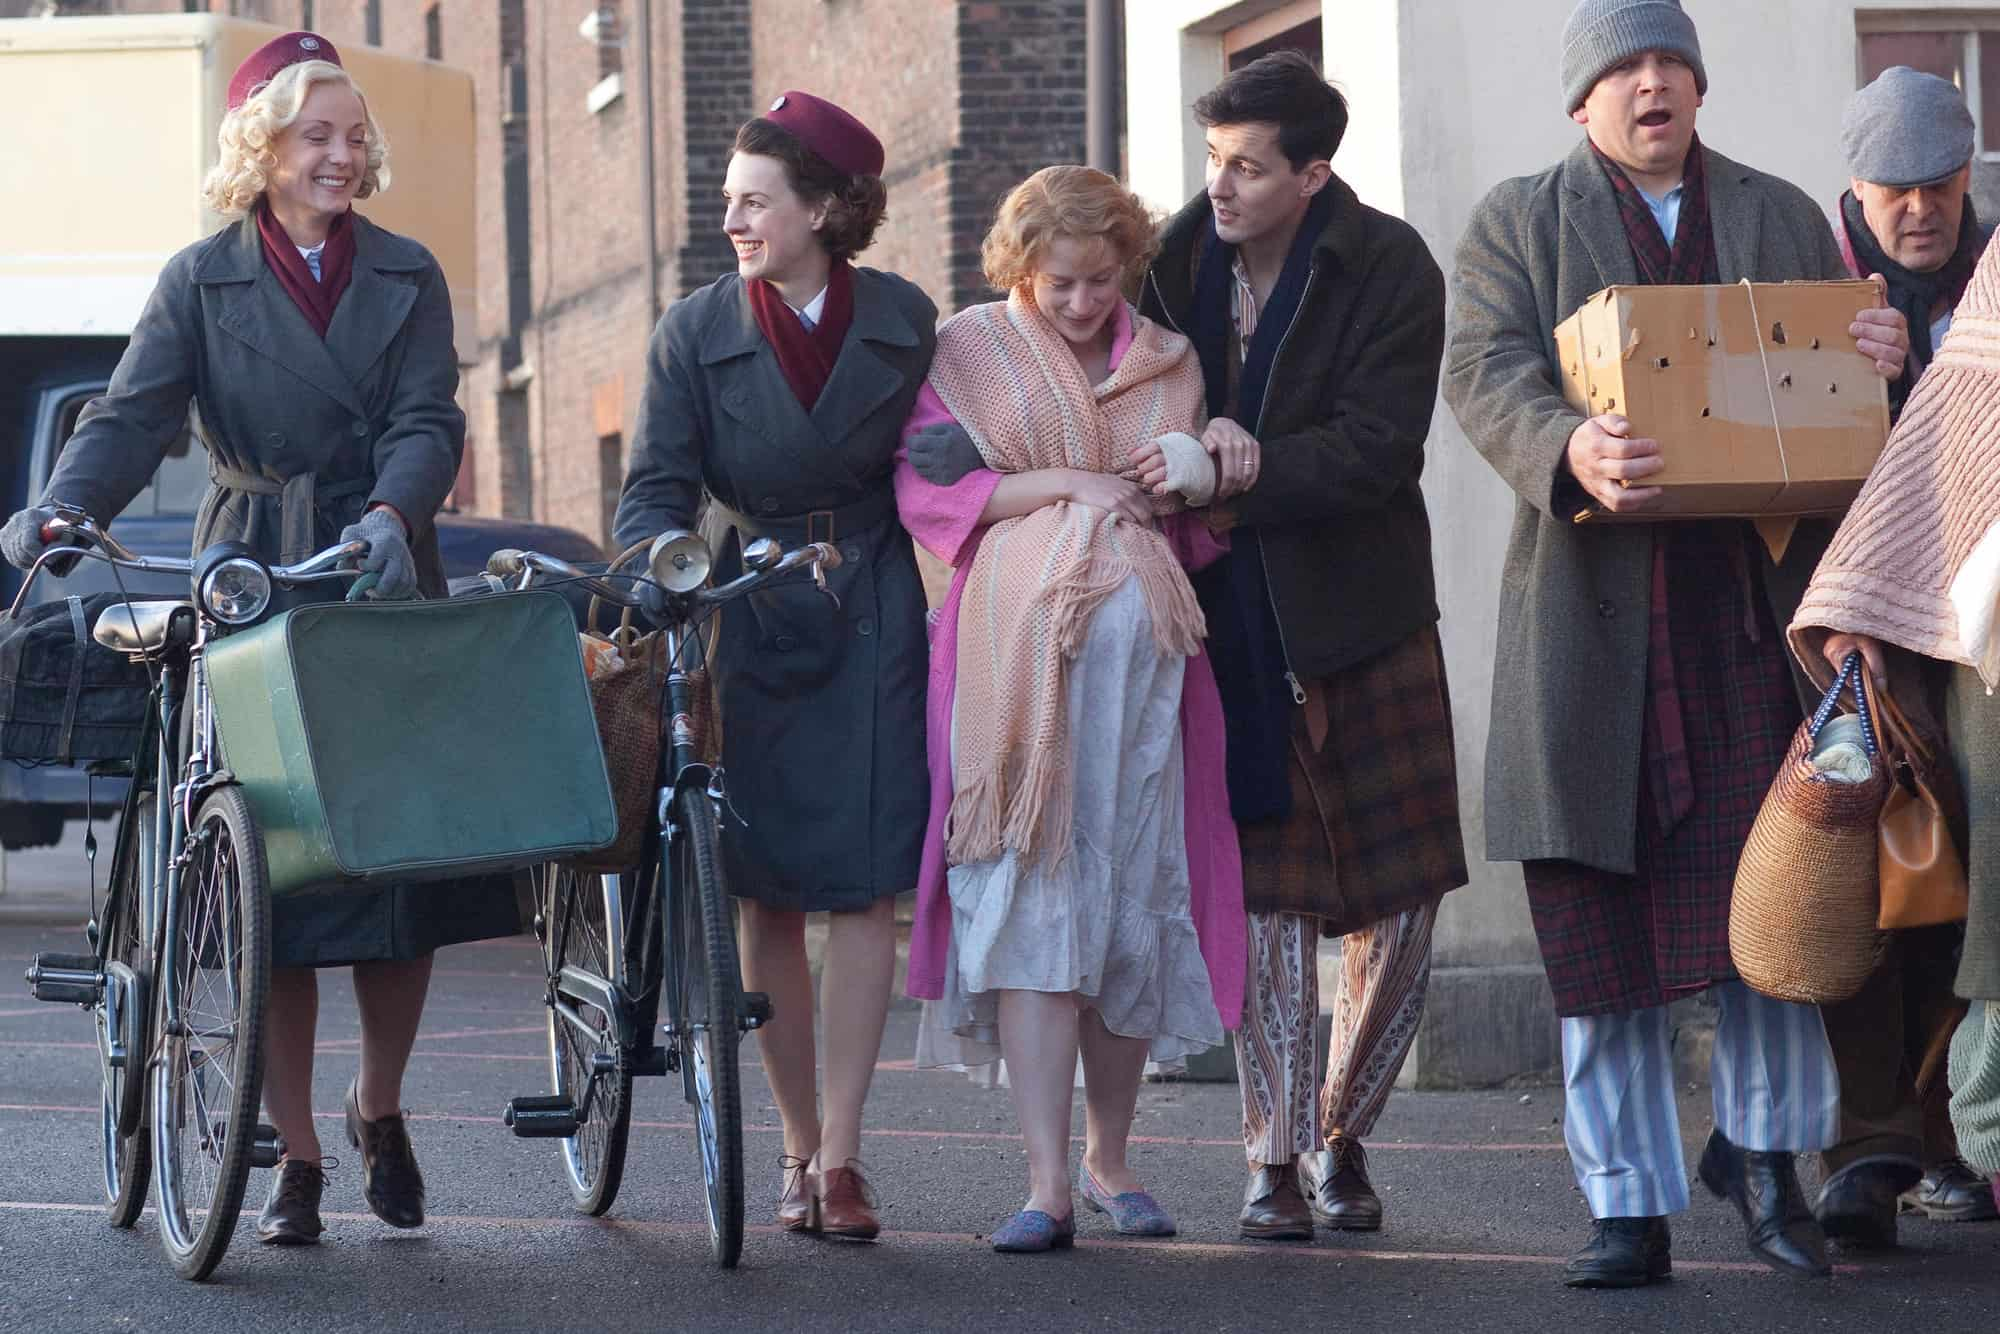 Call The Midwife Season 5 Christmas Special.Call The Midwife Renewed For 5th Season